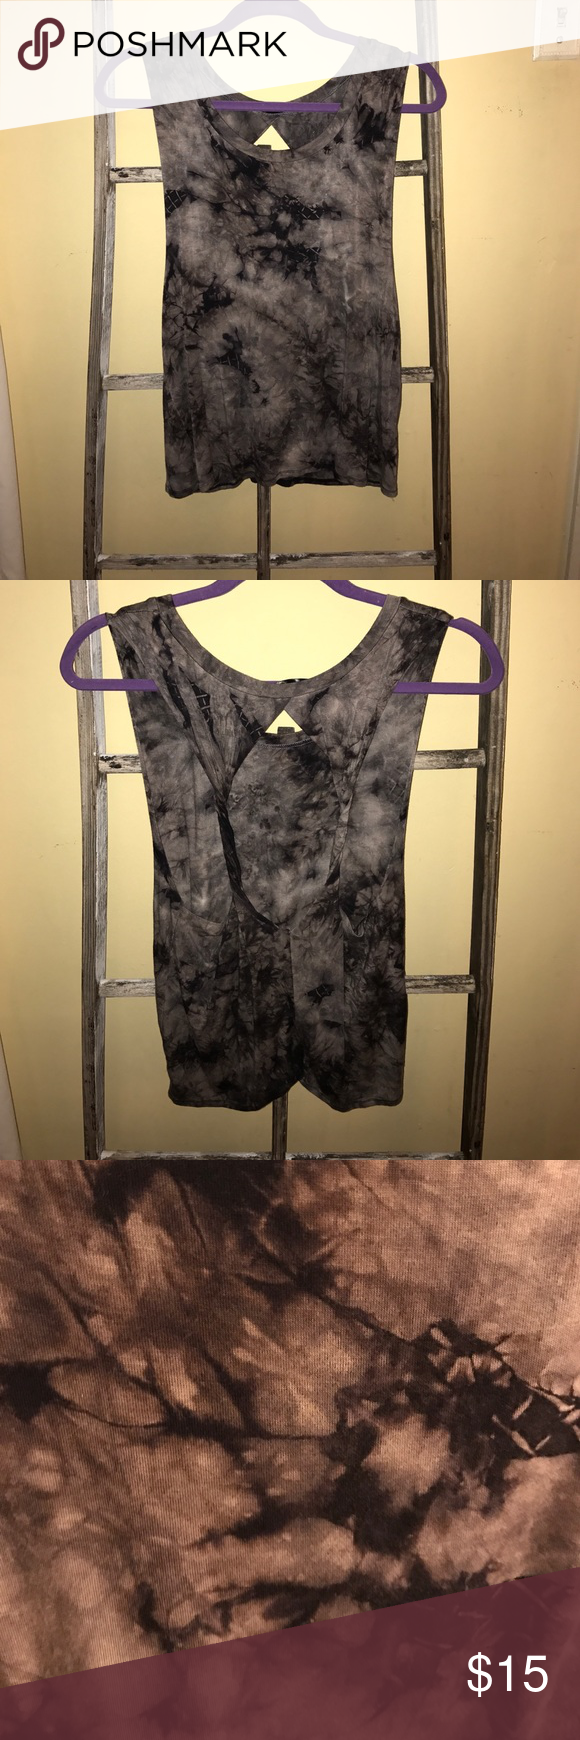 Tie-dyed Tank Open back tie-dyed tank. Made of Rayon with an extremely soft texture. Tie-dye is black and gray. Never worn, no wear or tear! interi Tops